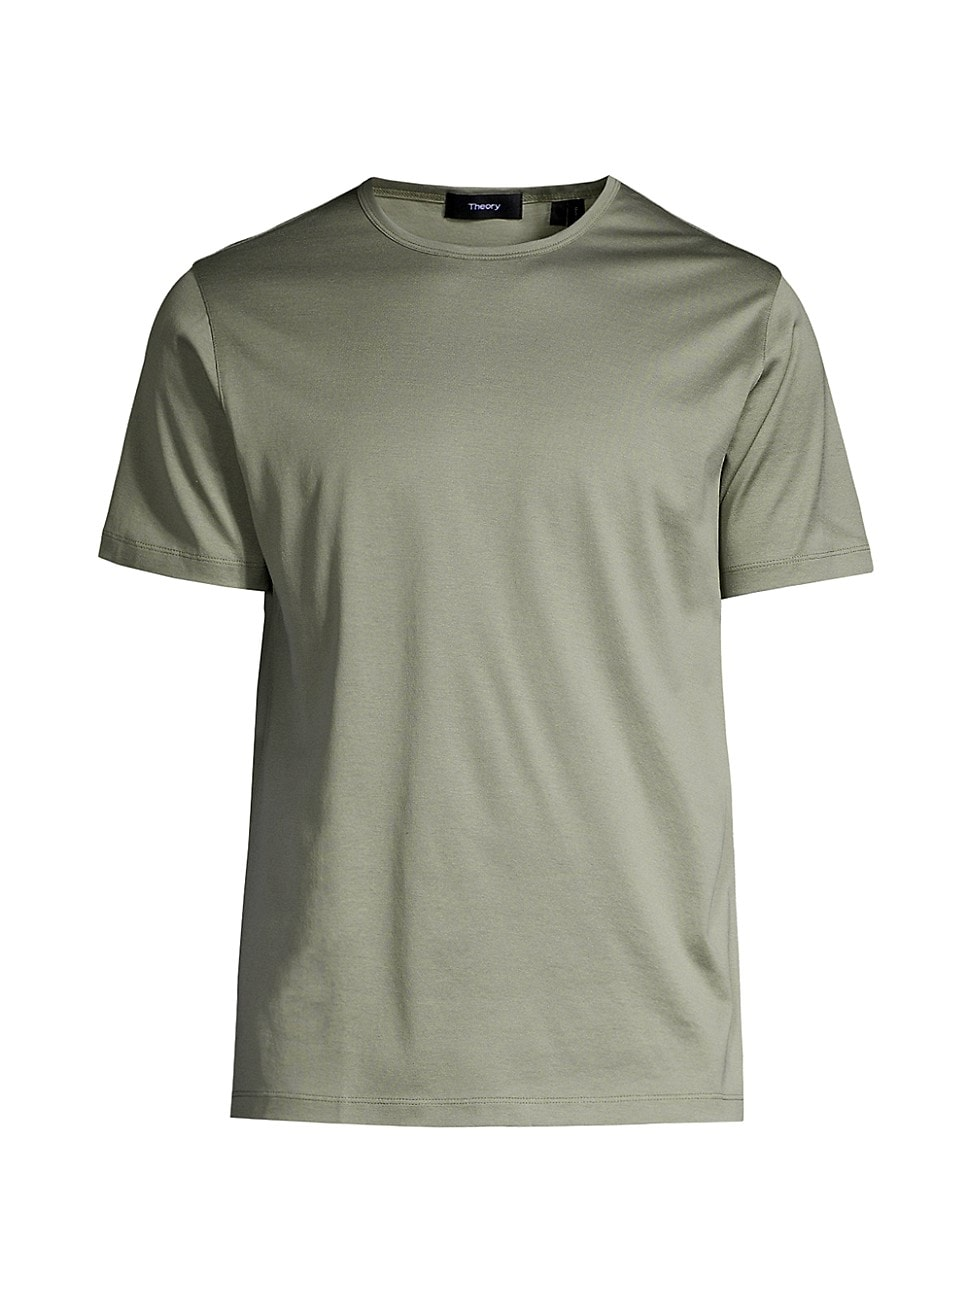 Theory MEN'S PRECISE LUXE COTTON T-SHIRT